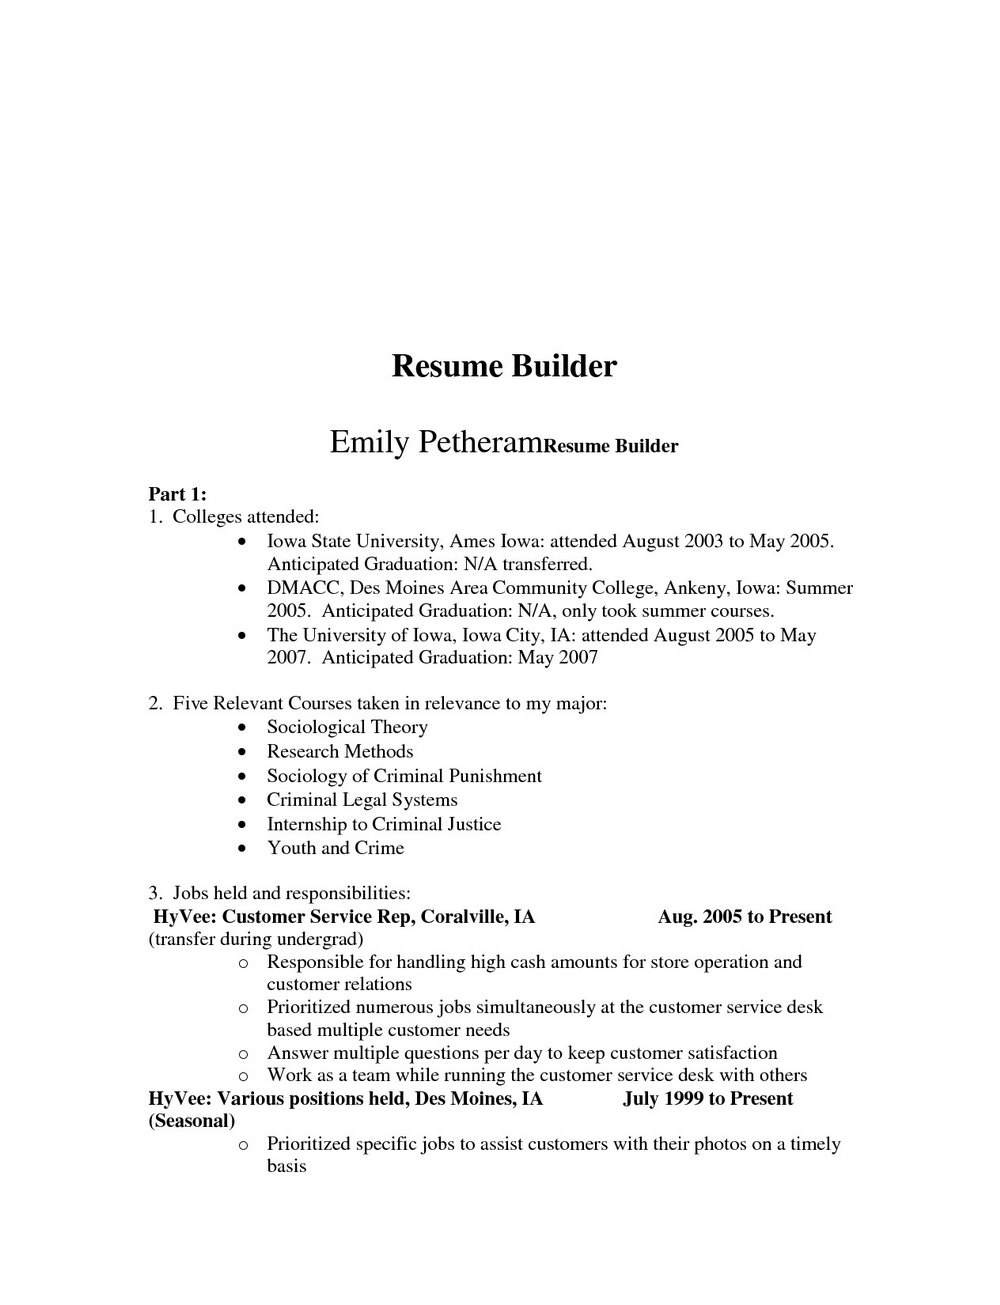 Free Resume Builder App For Android